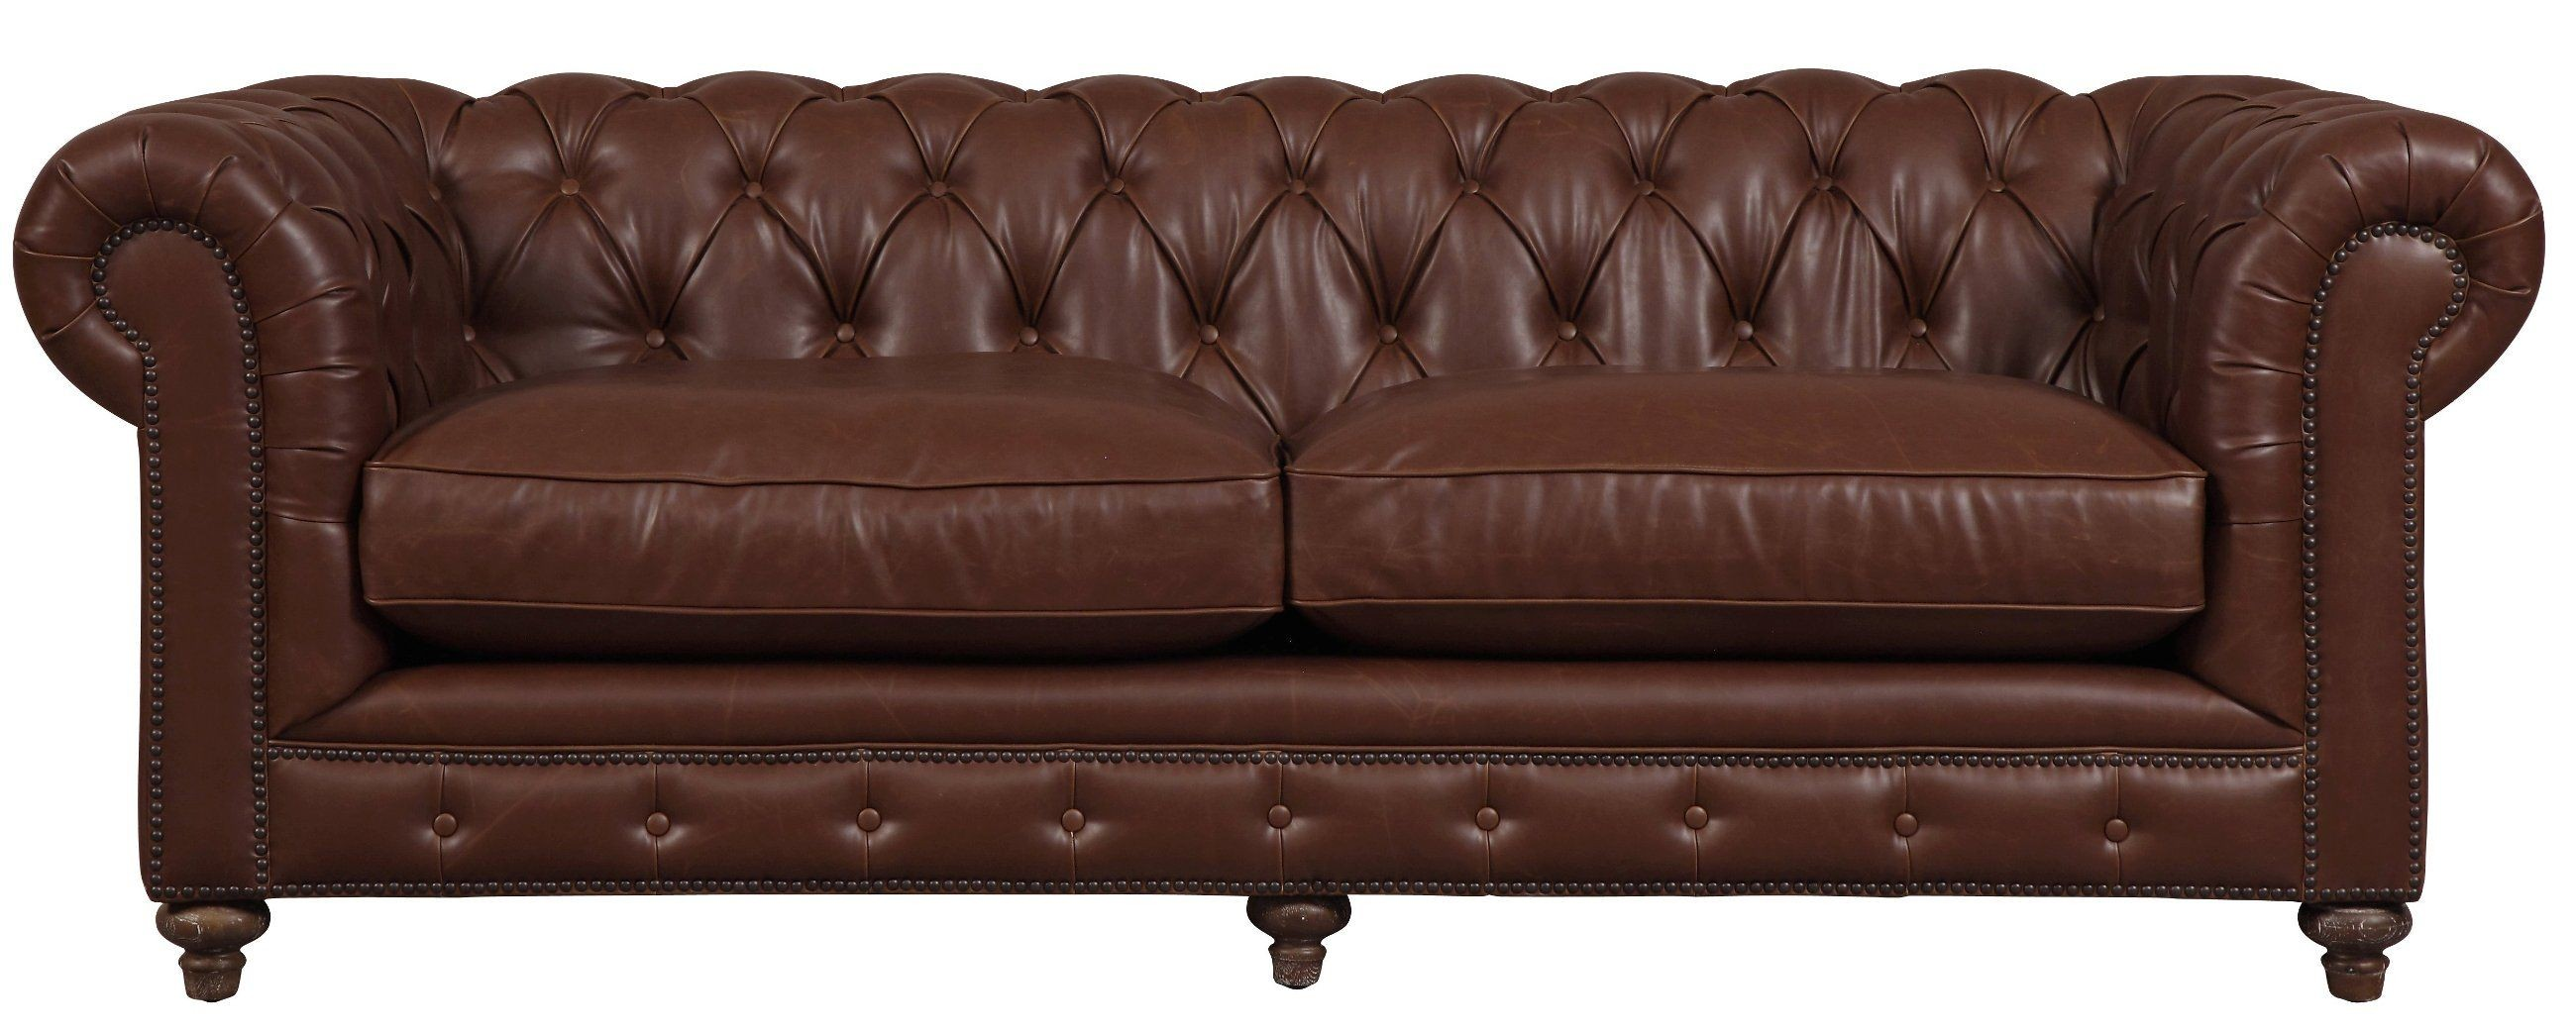 durango antique brown leather sofa s24 02 tov. Black Bedroom Furniture Sets. Home Design Ideas